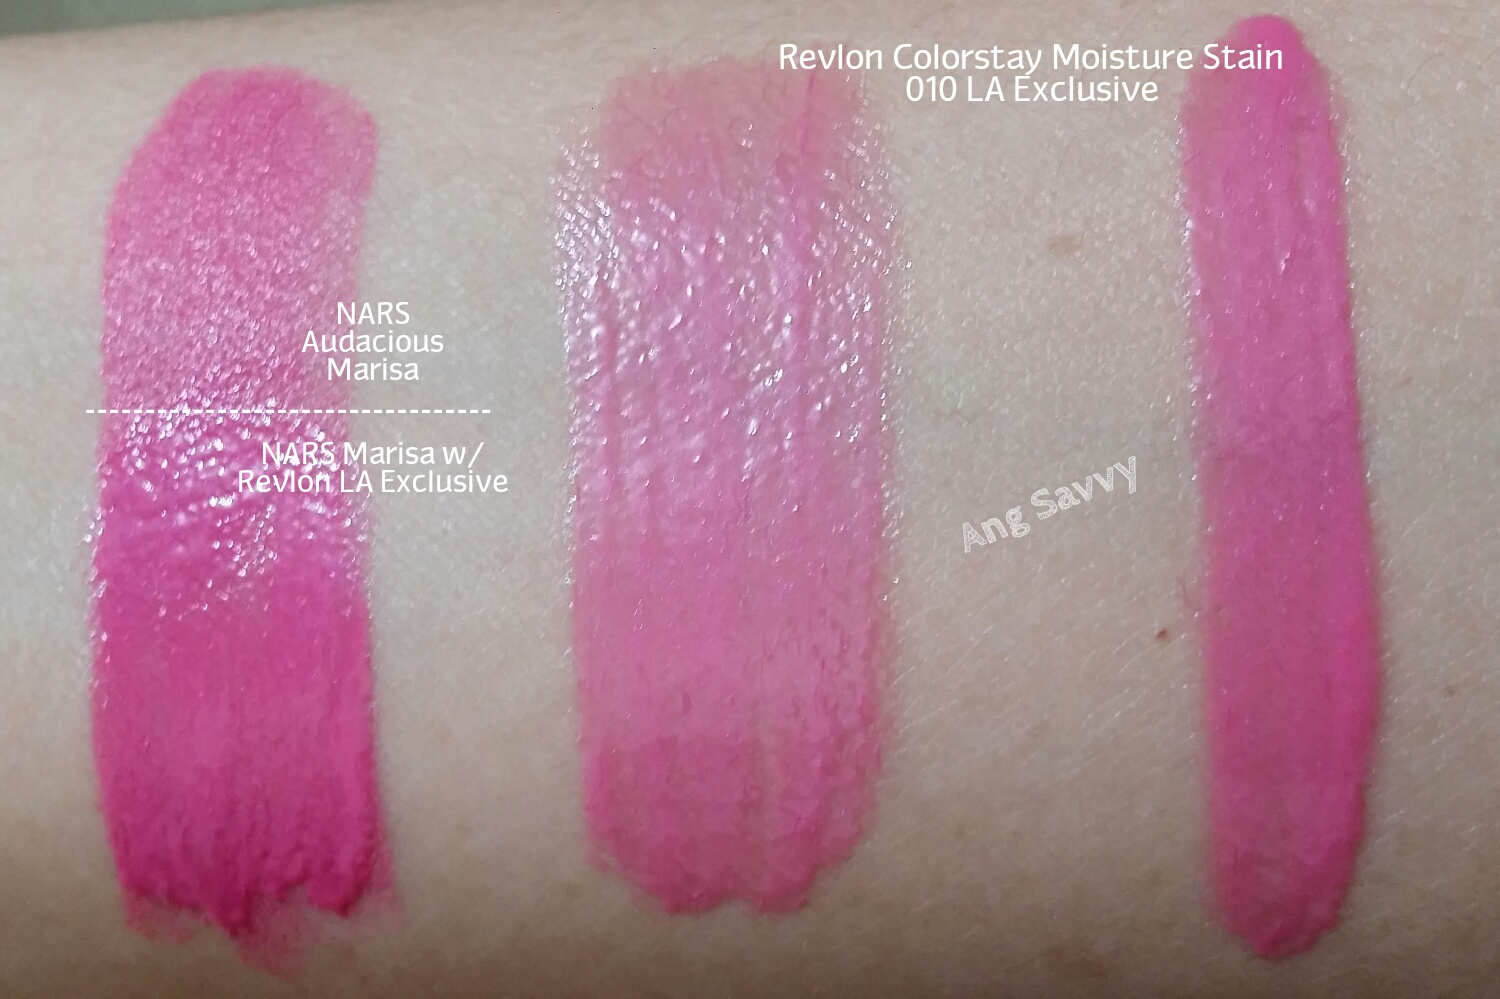 Revlon Colorstay Moisture Stains 010 LA Exclusive Swatch